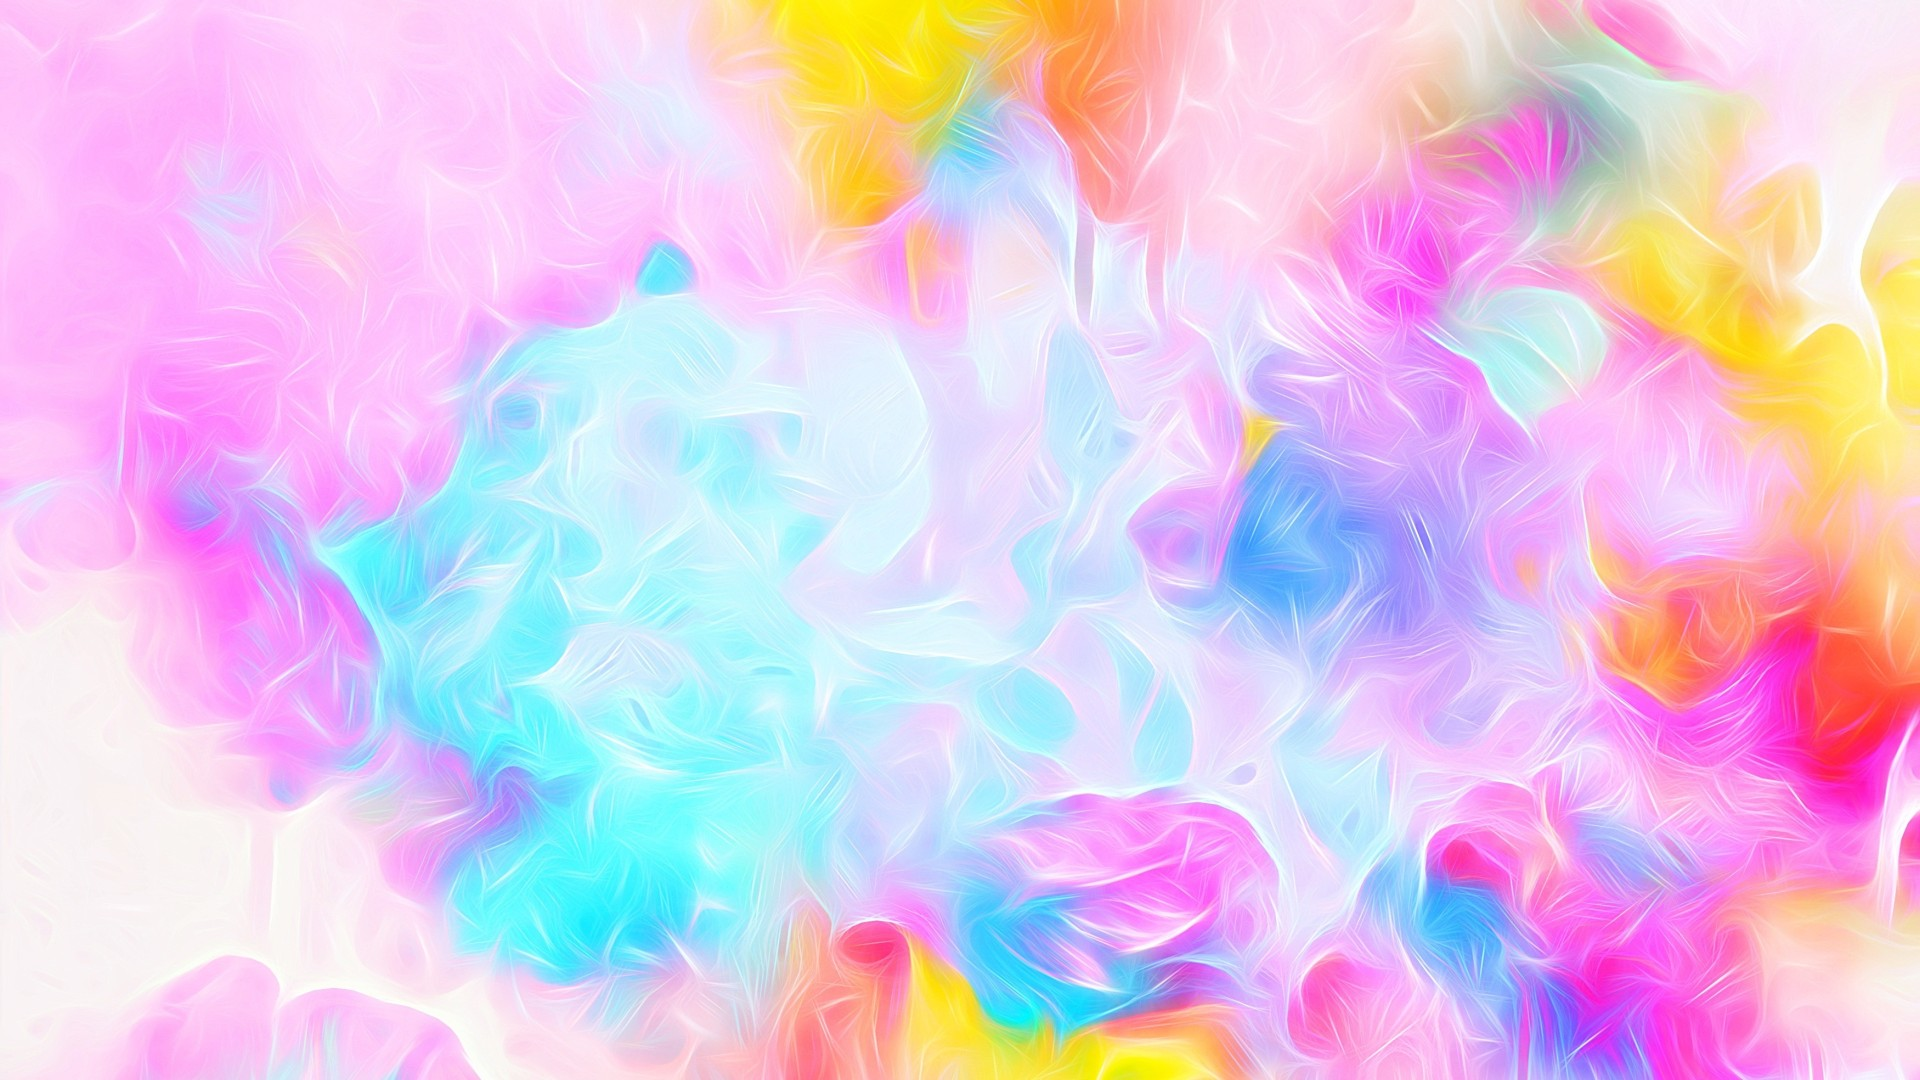 Wallpapers Abstract Pack 005 Wallpapers Design